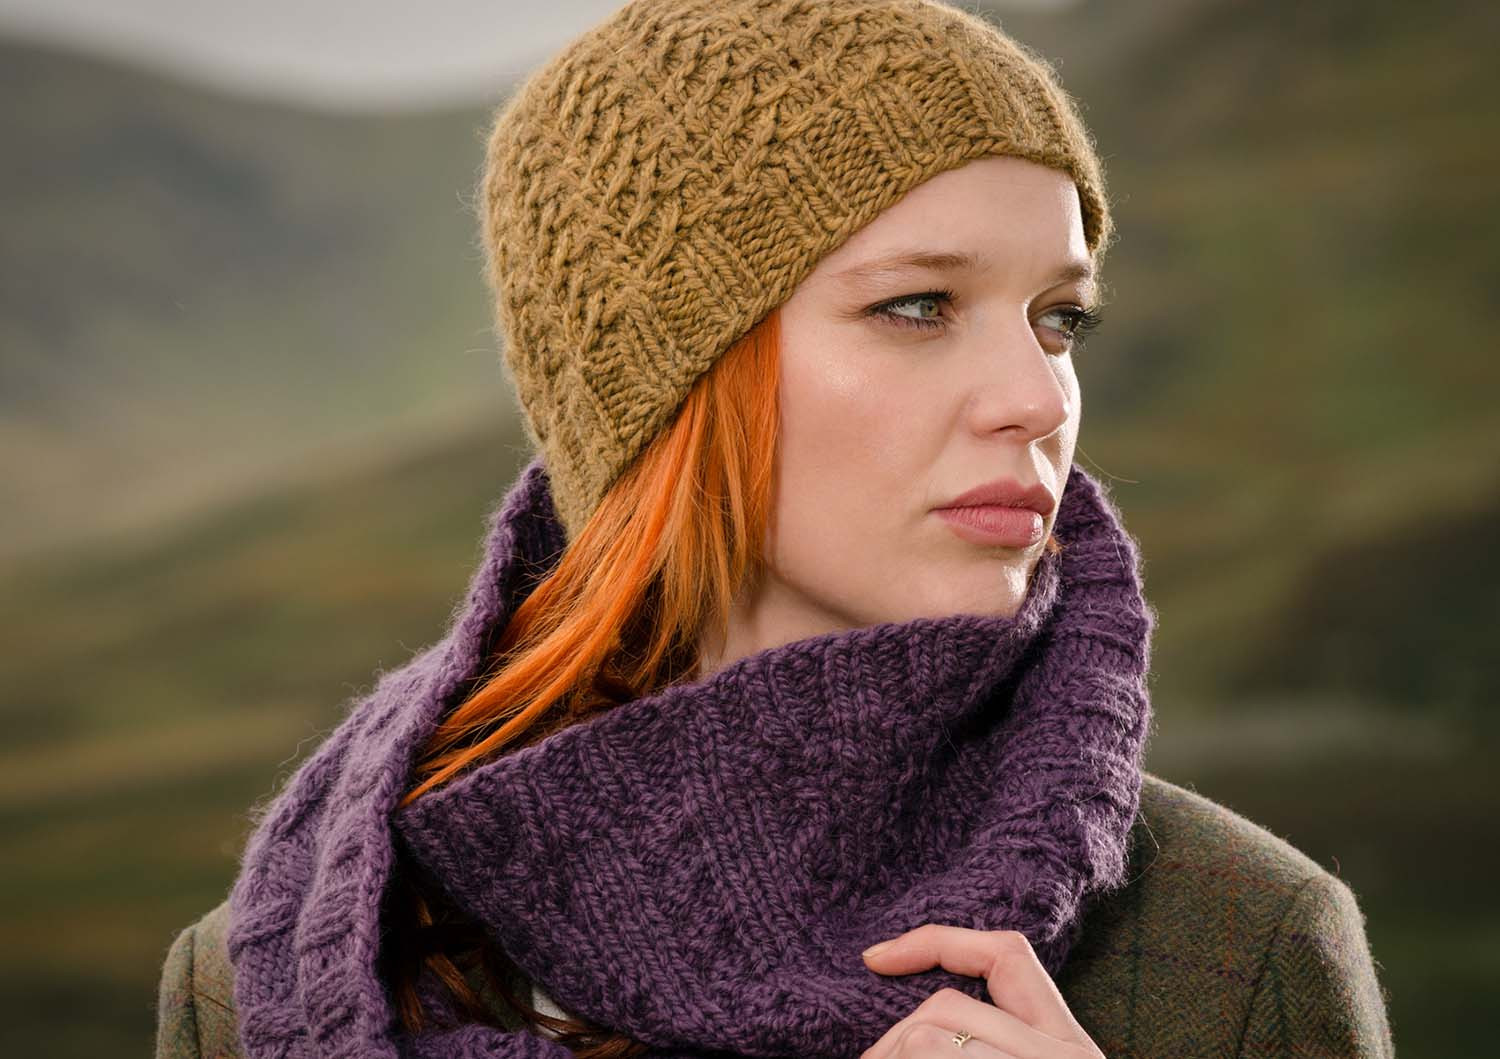 Elegant 6 Knitted Hat Patterns for Women the Fibre Co Ladies Knitted Hats Of Adorable 50 Pictures Ladies Knitted Hats